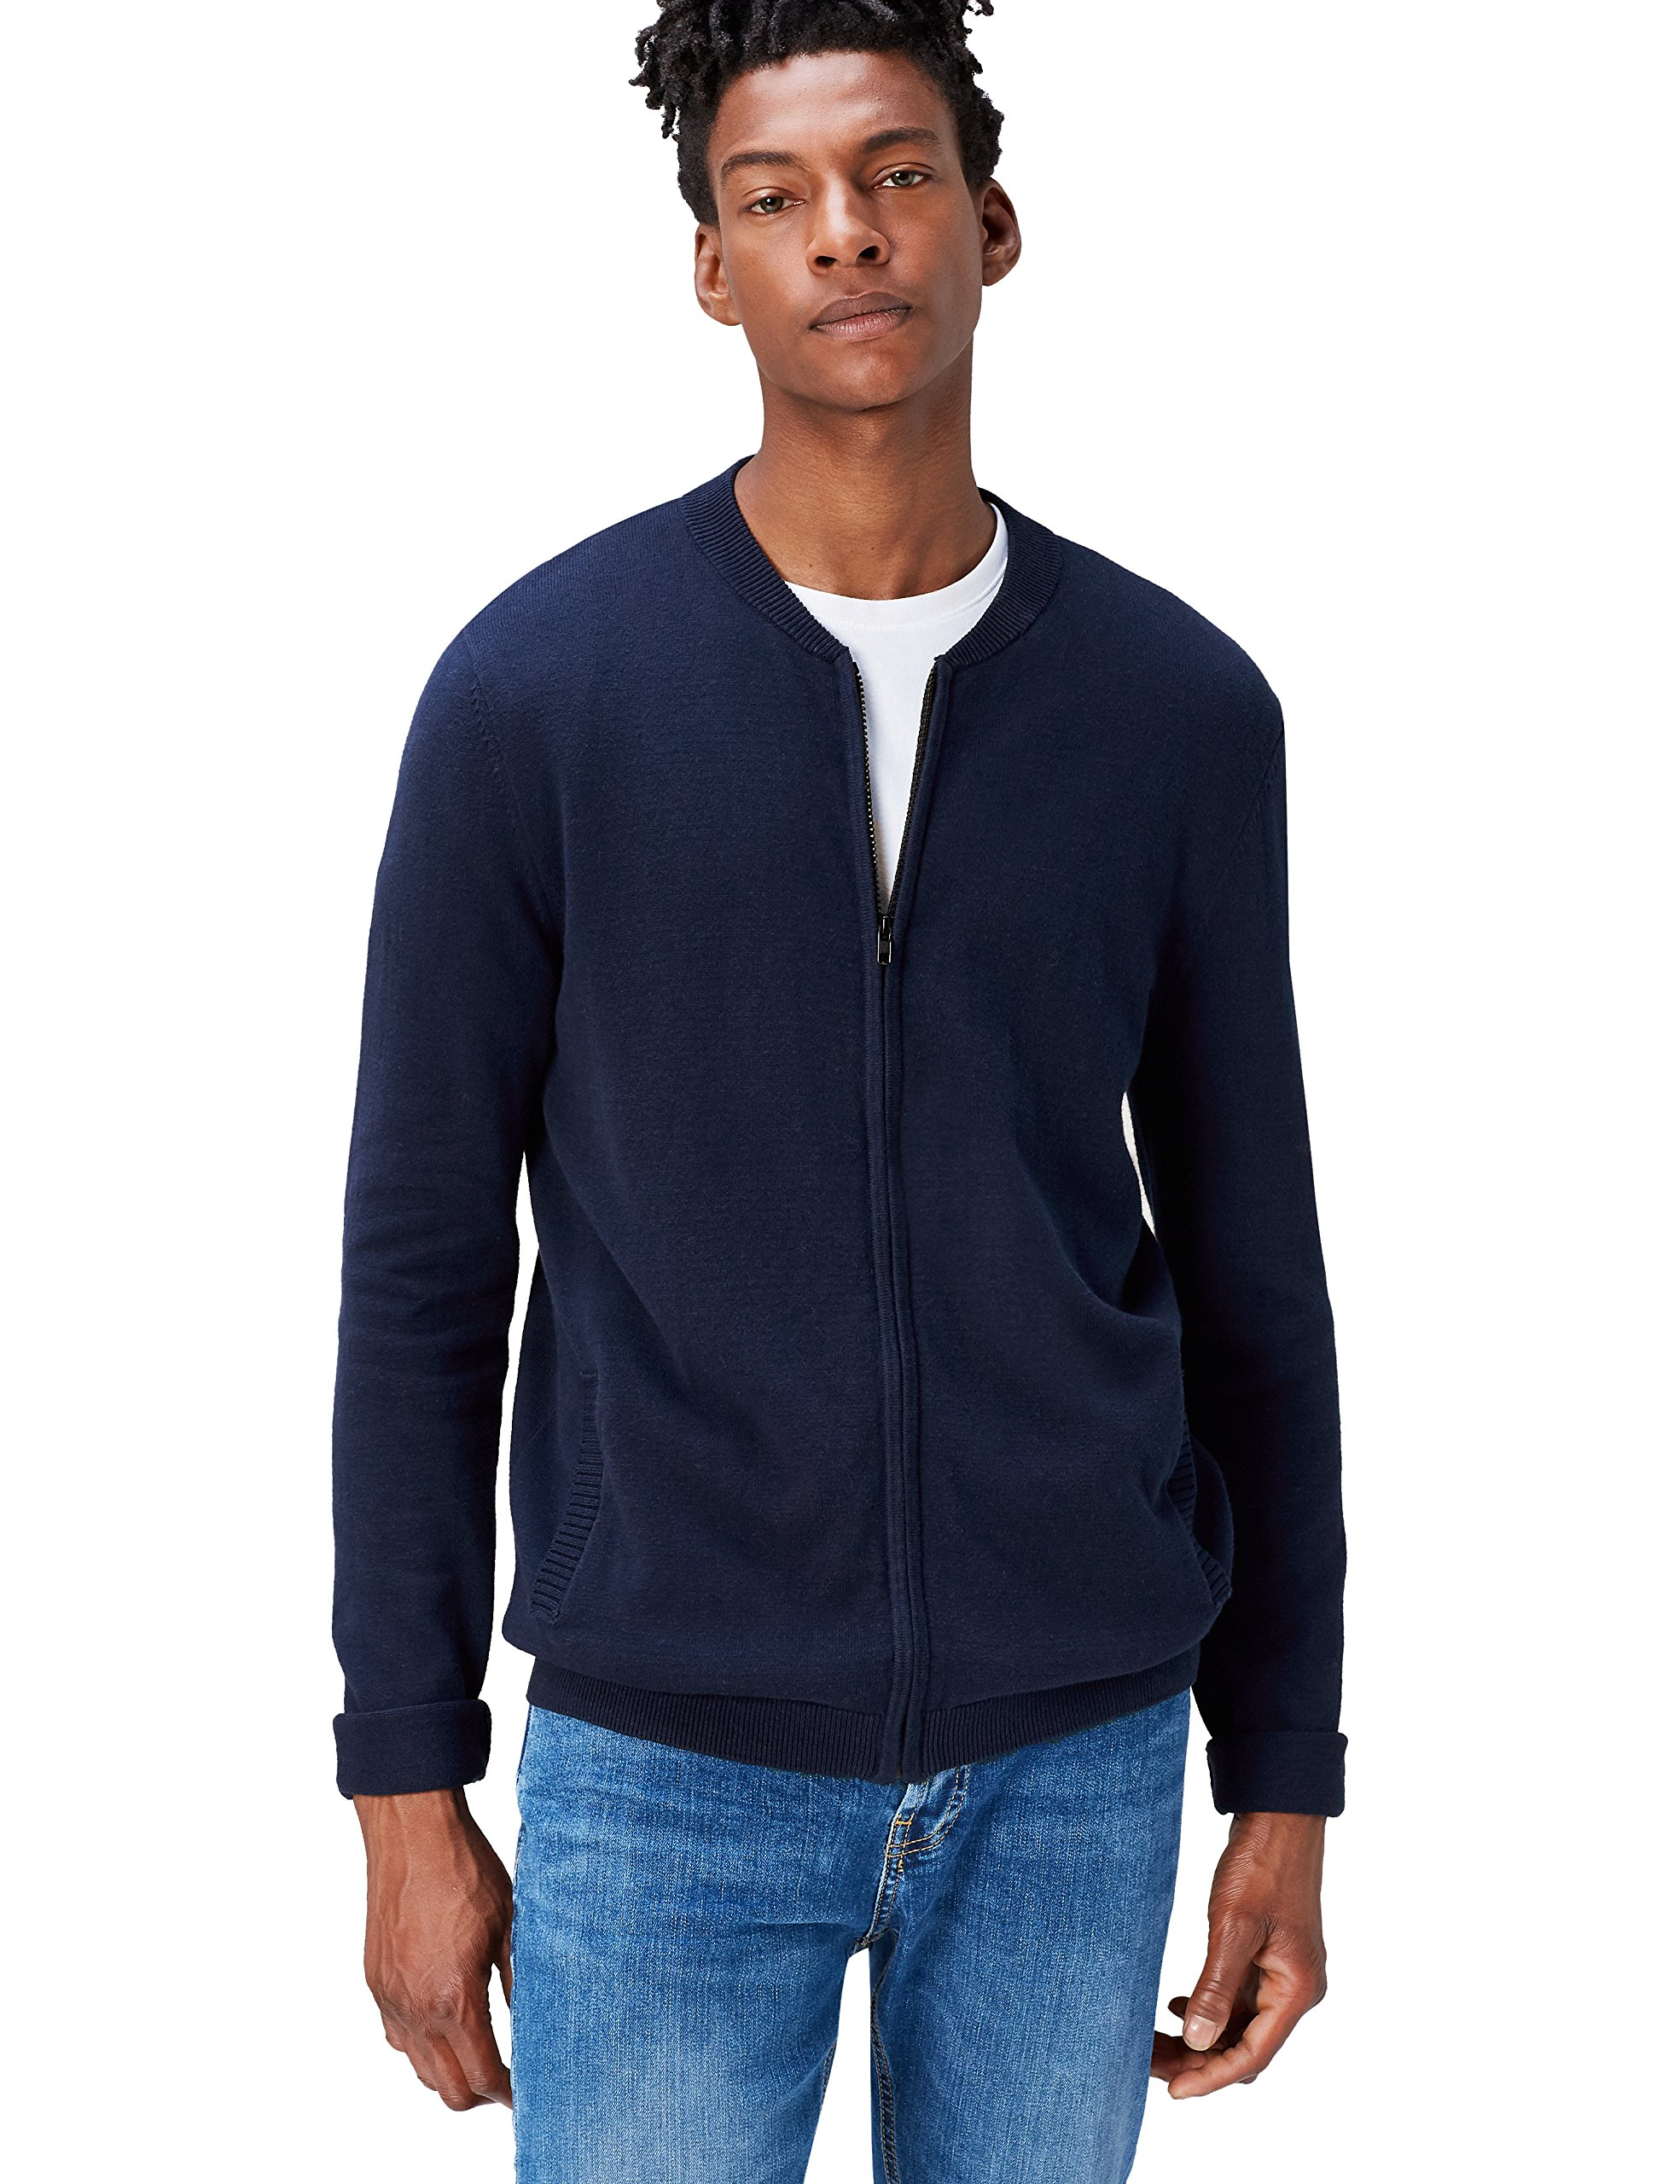 find. Men's Cotton Cardigan Sweater in Bomber Jacket Style, Blue (Navy), Large by find.